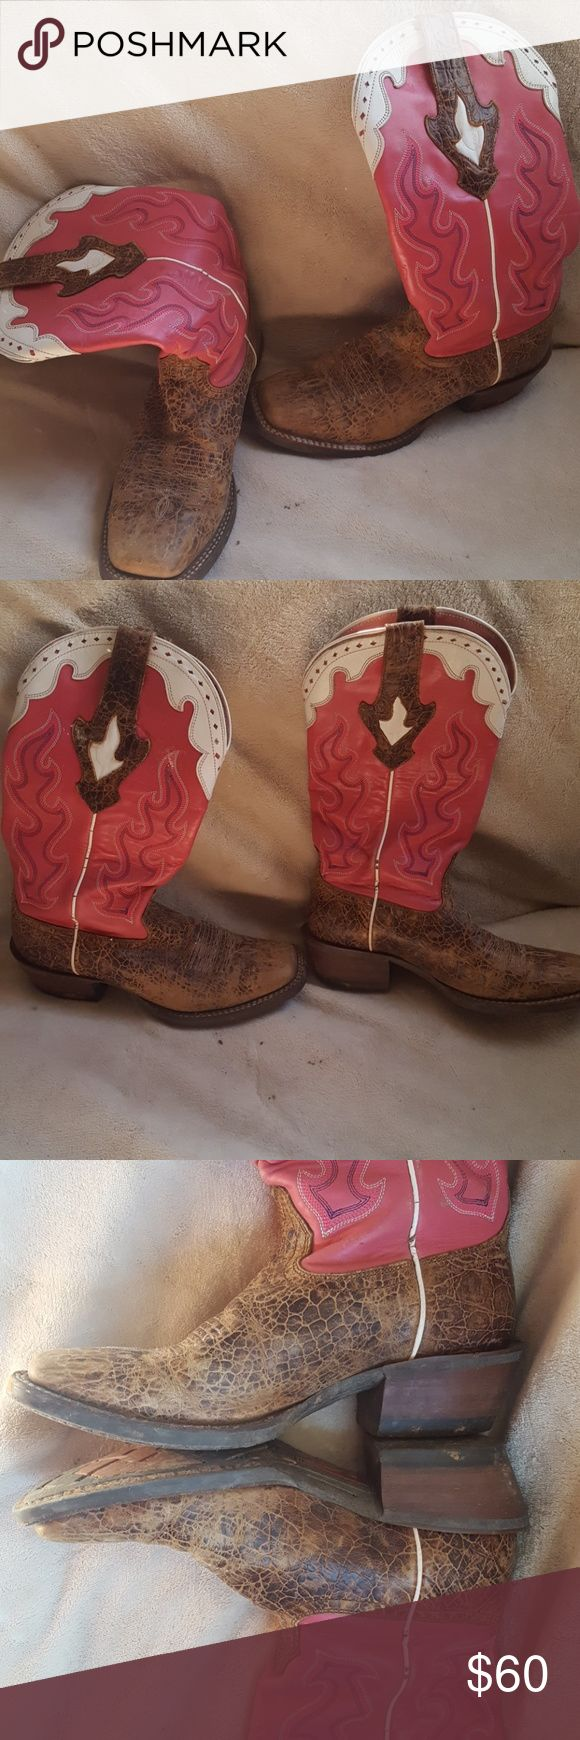 Ariat Cowboy Boots Pink purple and white Ariat brand western or cowboy boots  Rubber bottoms  Square toe  Size 6.5  I wear a 7 and these fit me. I believe with boots you go a size smaller.   Made in Mexico Used as work boots so has some wear Ariat Shoes Heeled Boots